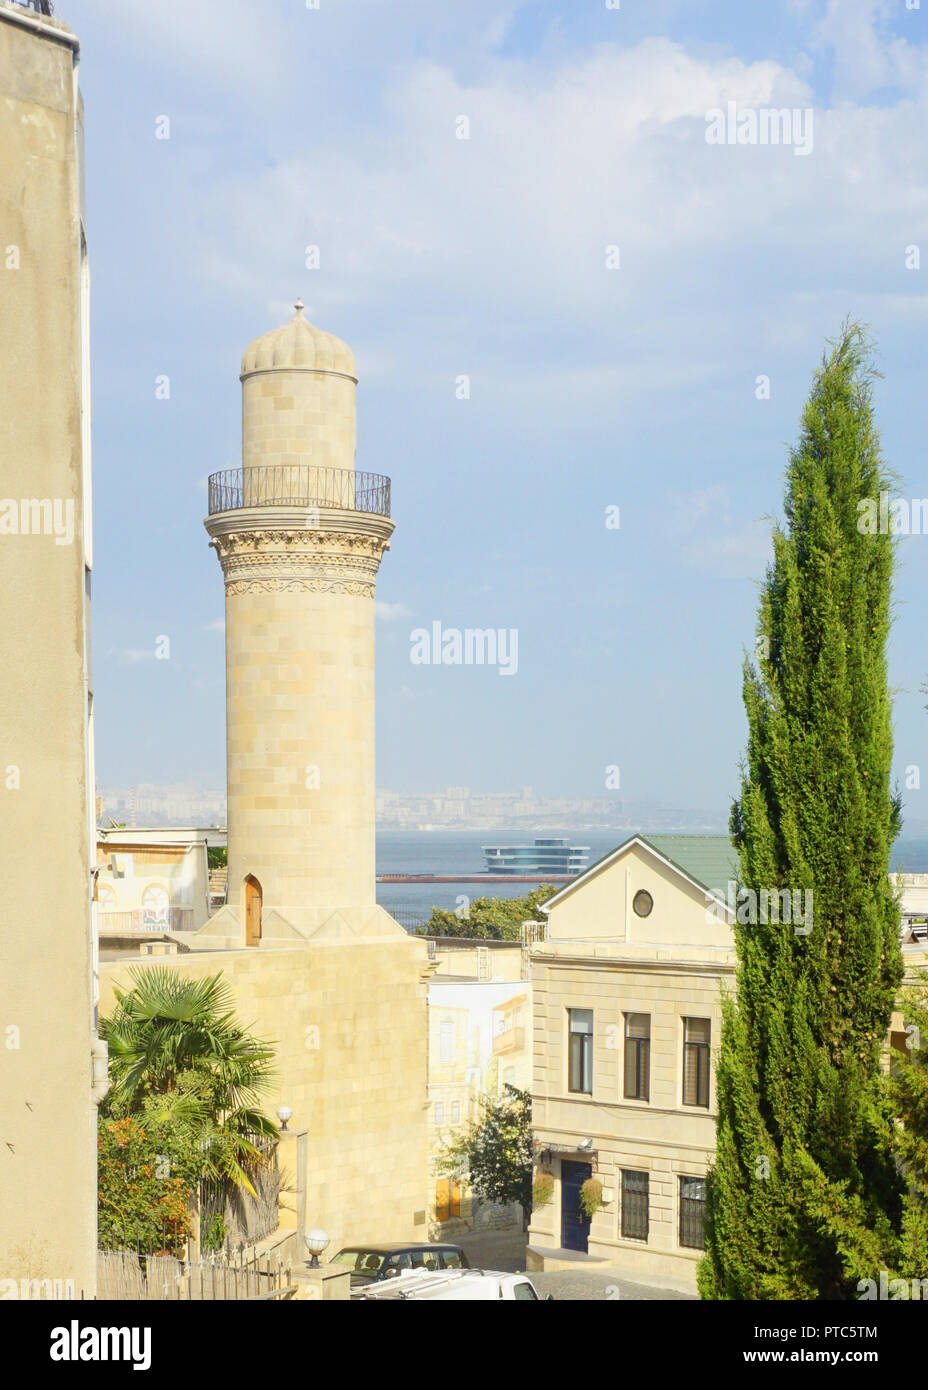 Lonely Mosque Minaret in Baku with Caspian Sea View - Stock Image